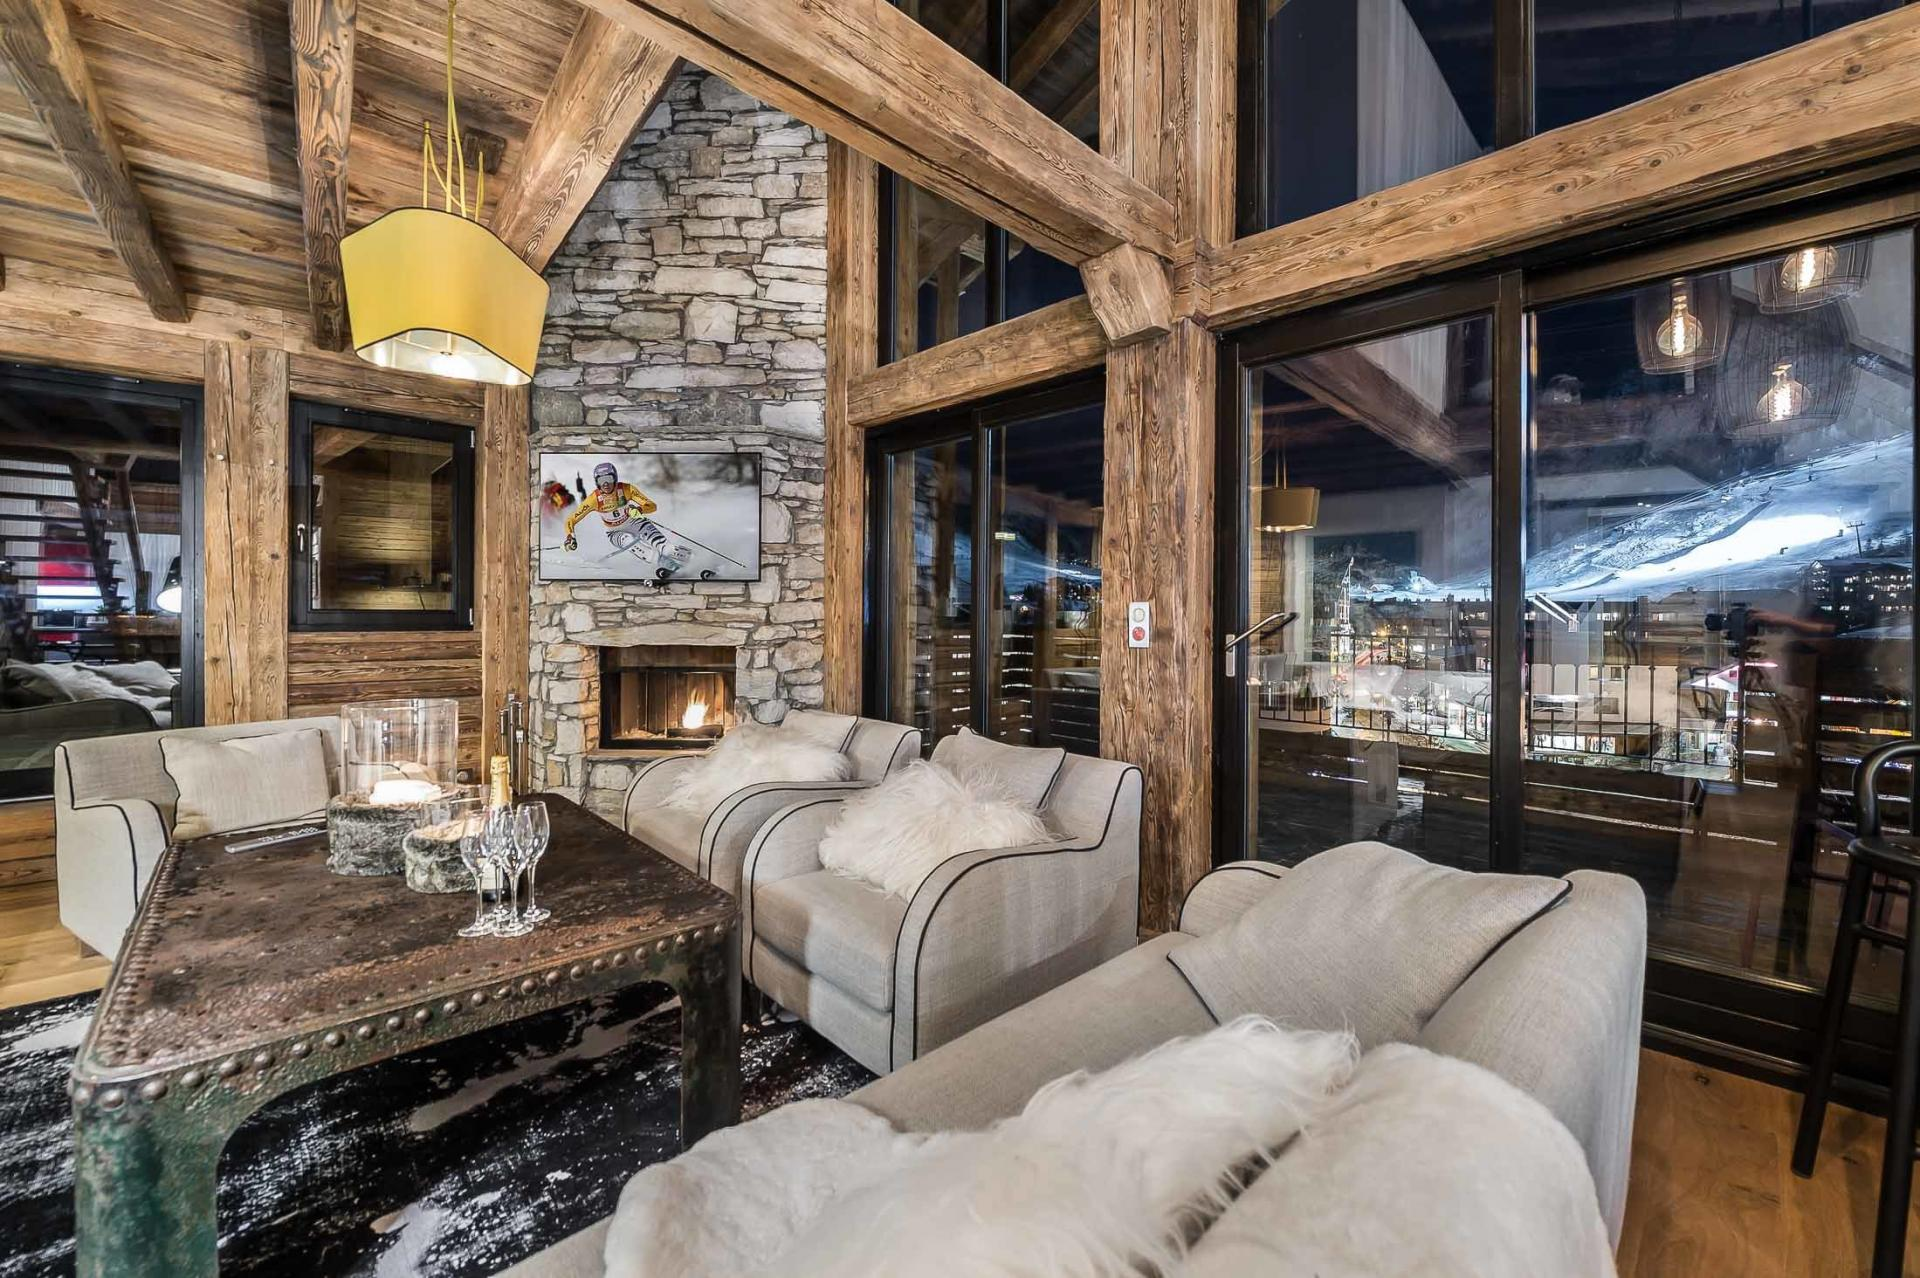 VIEWS ON THE MOUNTAINS BY NIGHT IN A BEAUTFIFUL APARTMENT IN THE ALPS